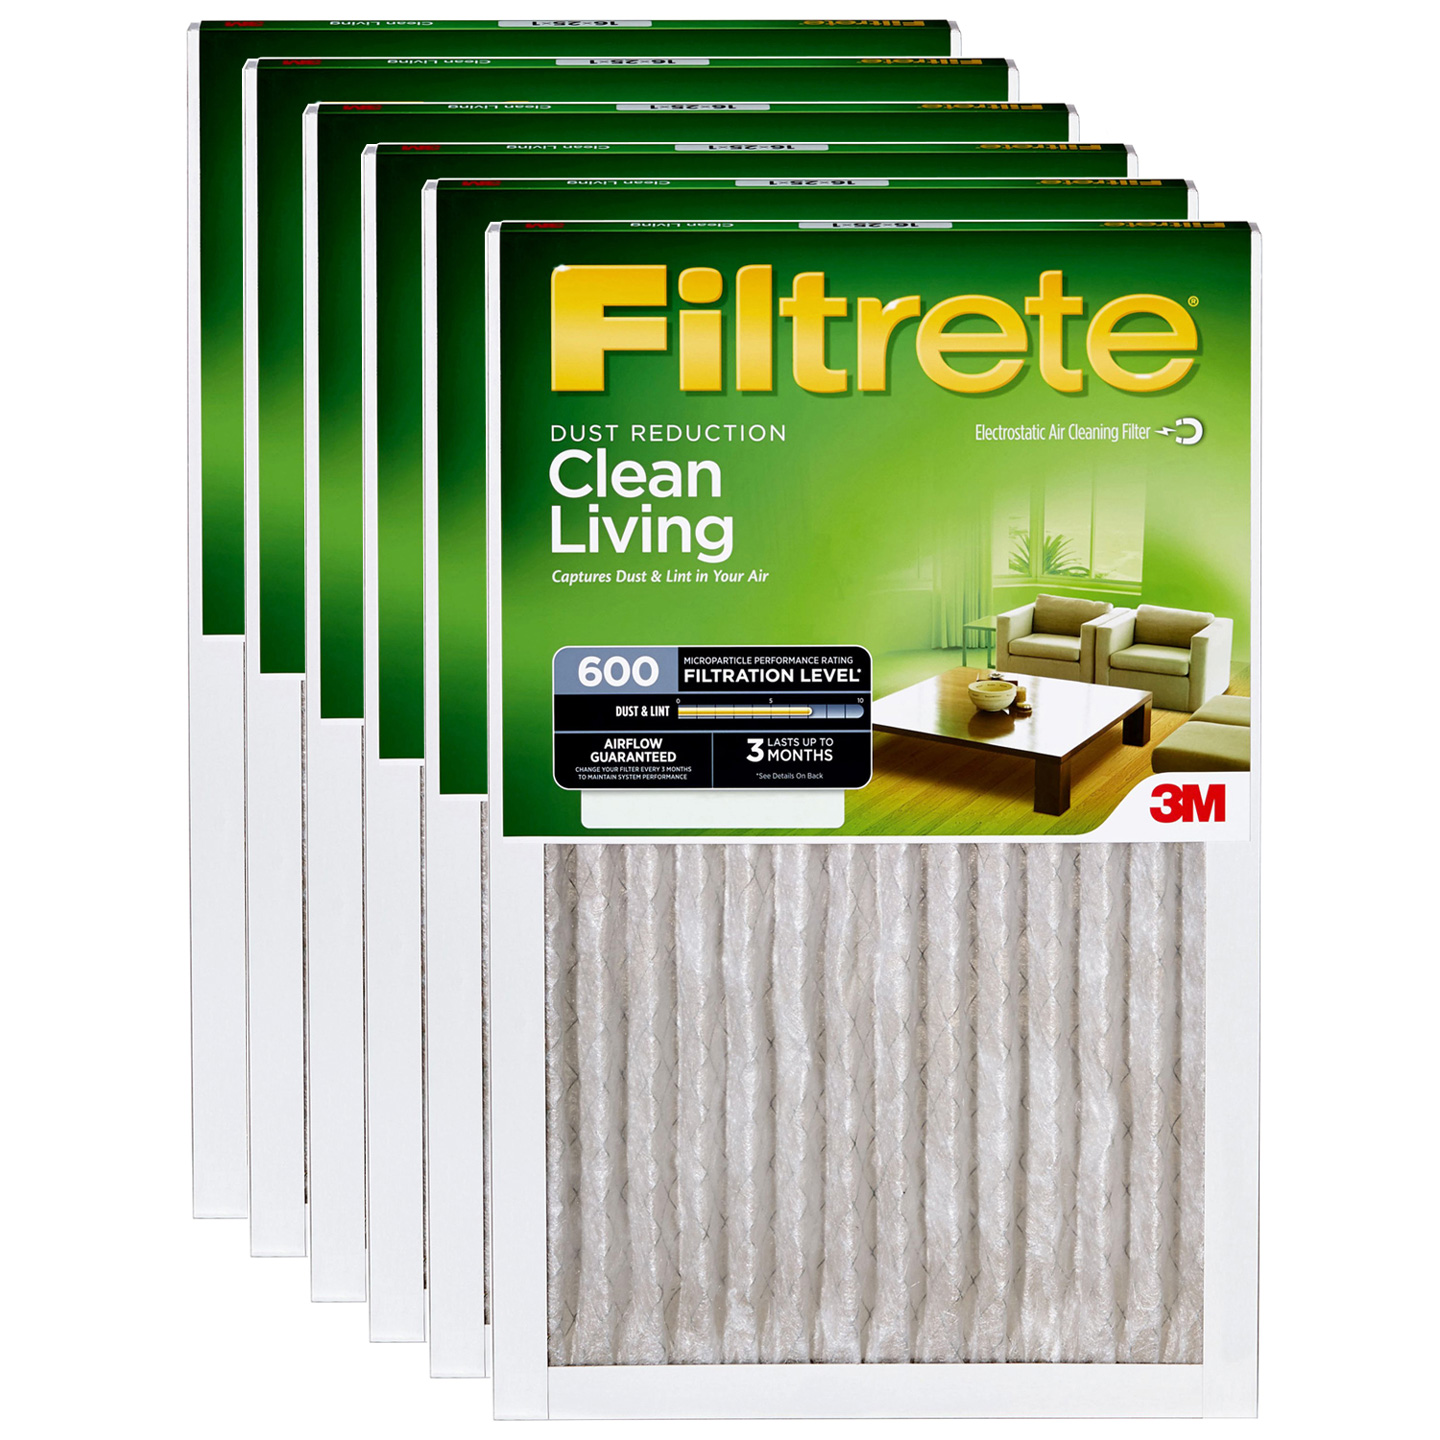 Filtrete 600 Dust Reduction Clean Living Filter - 18x24x1 (6-Pack) FILTRETE_DUST_18x24x1_6_PACK